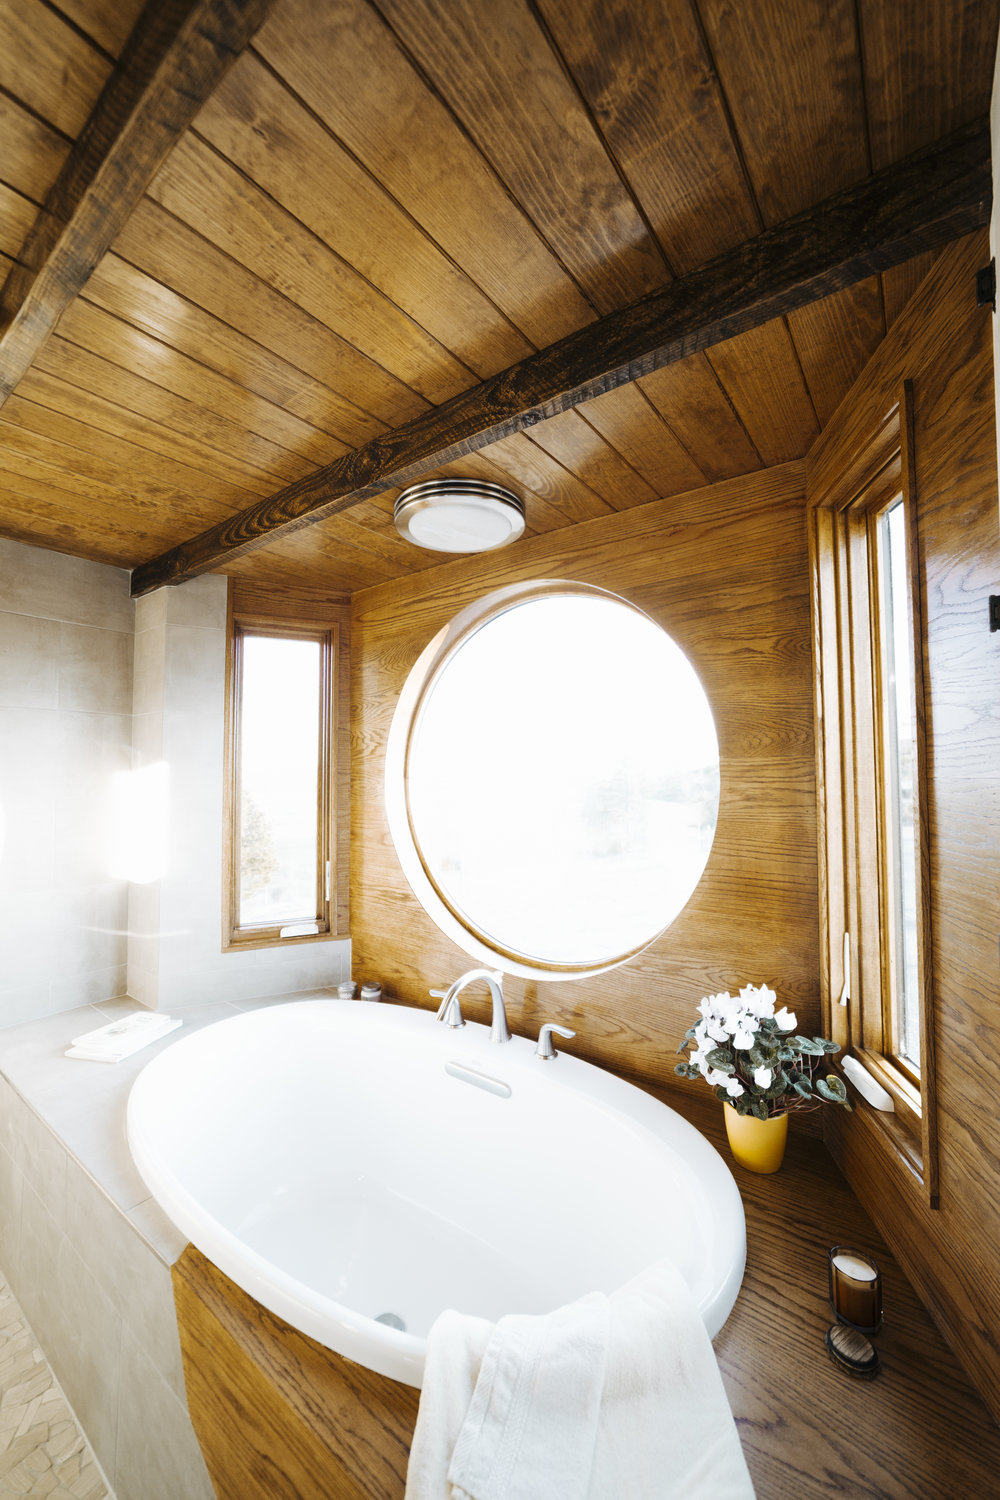 The Monocle Tiny House by Wind River Tiny Homes. Featuring a round window in the custom bathroom.